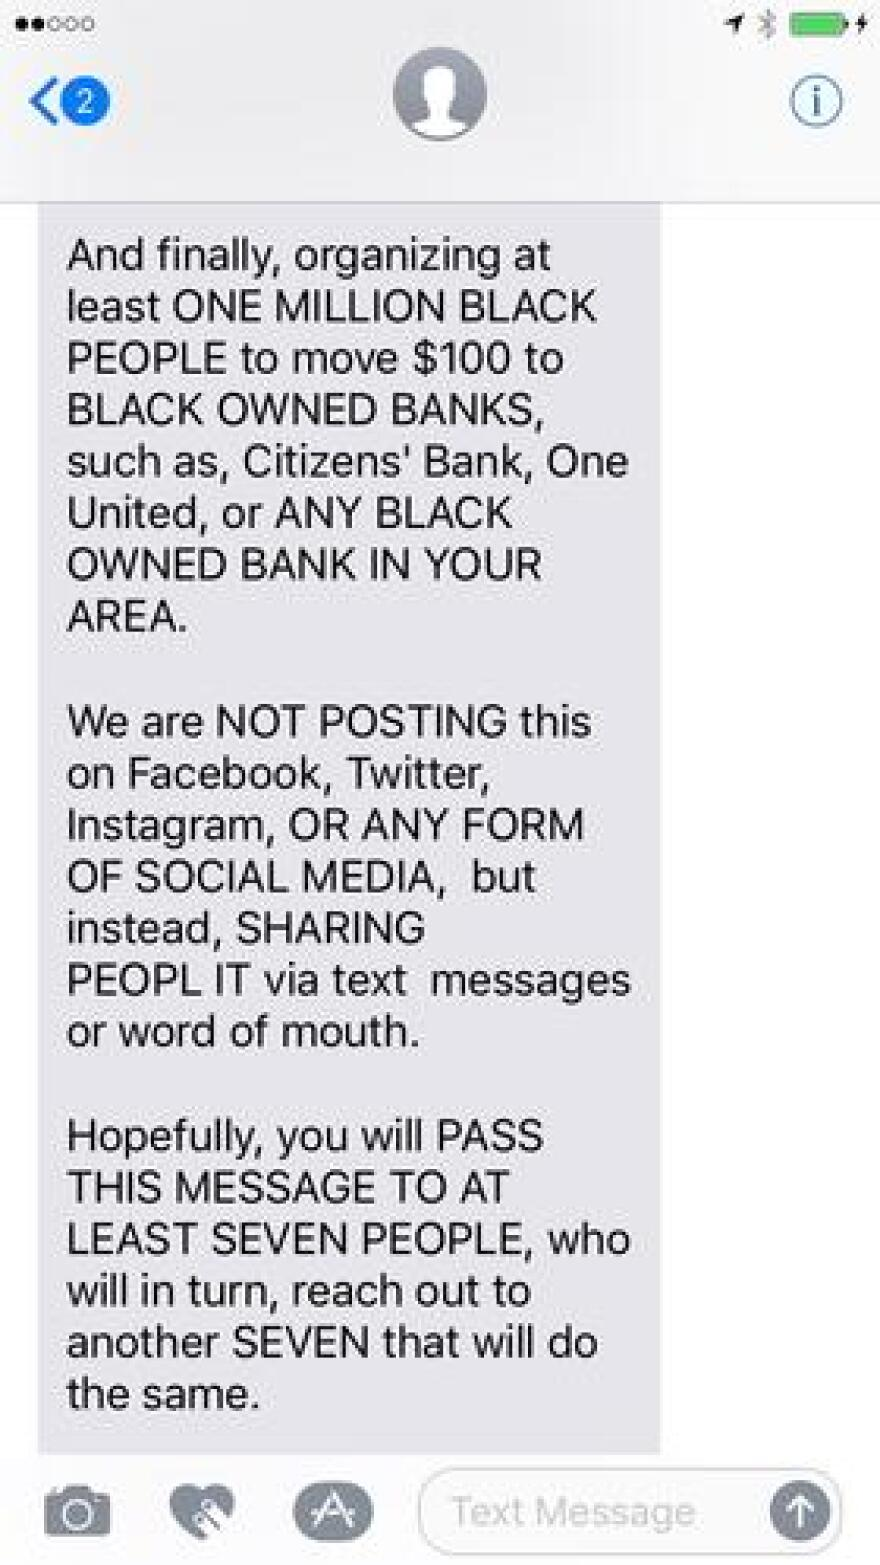 The text that helped push the #BankBlack movement.